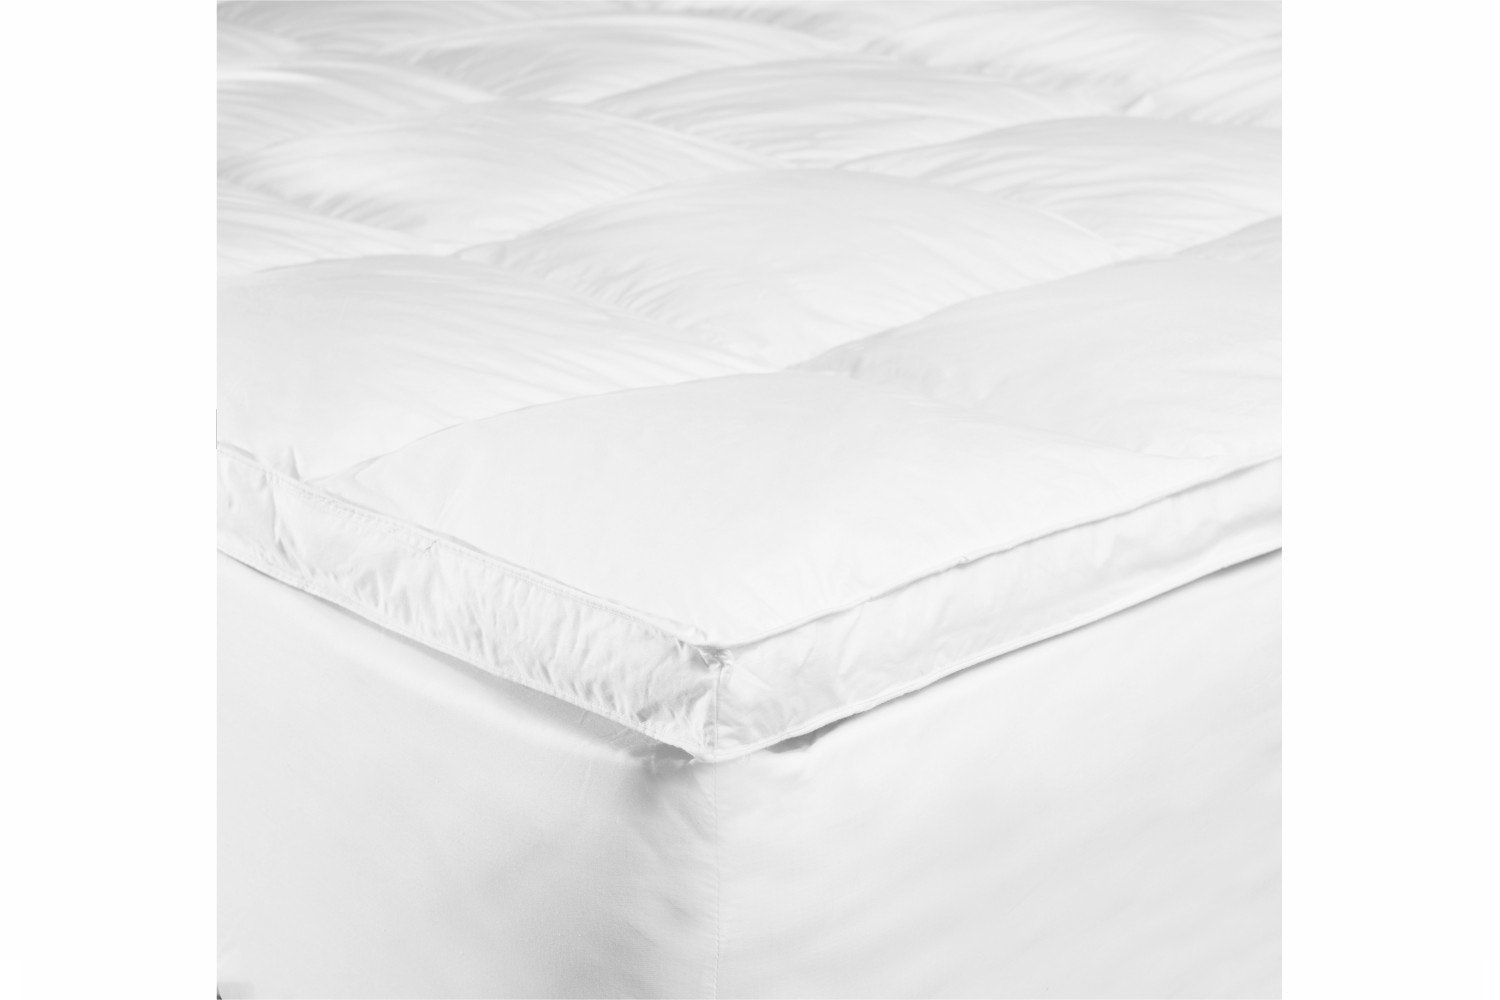 The Linen Room White Goose Feather & Down Topper | Single